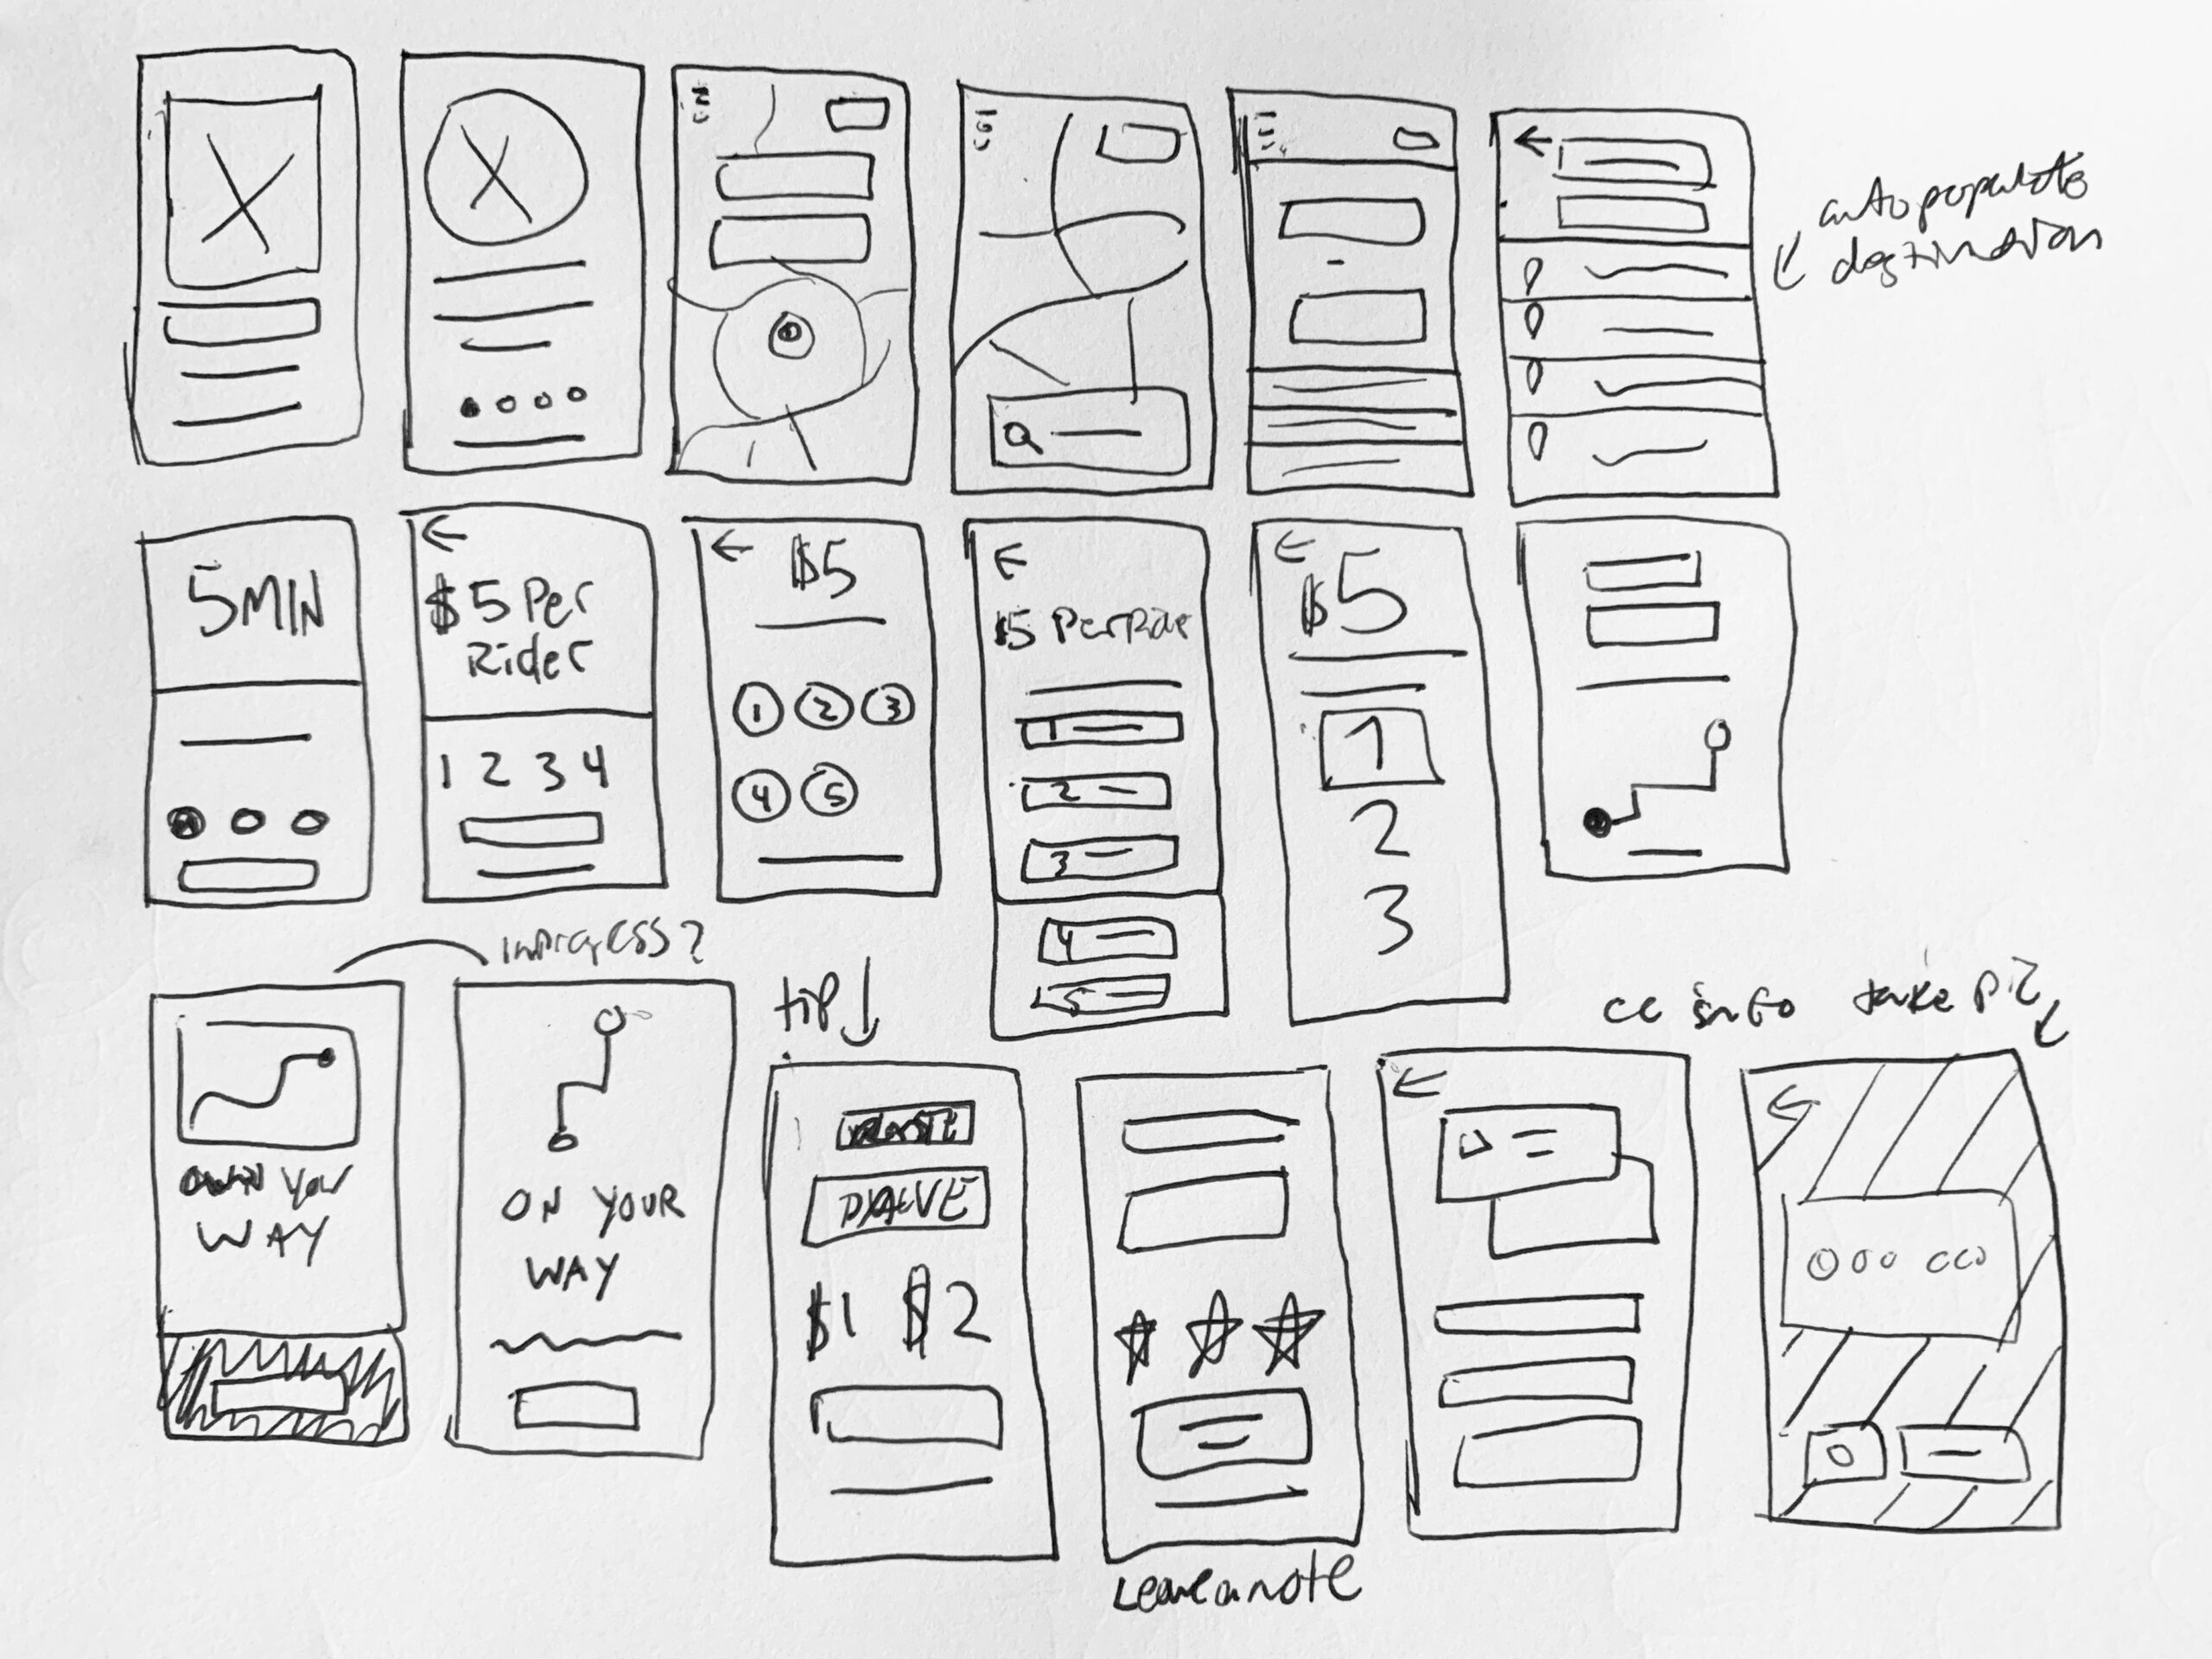 design sketches of the Gotcha Ride app